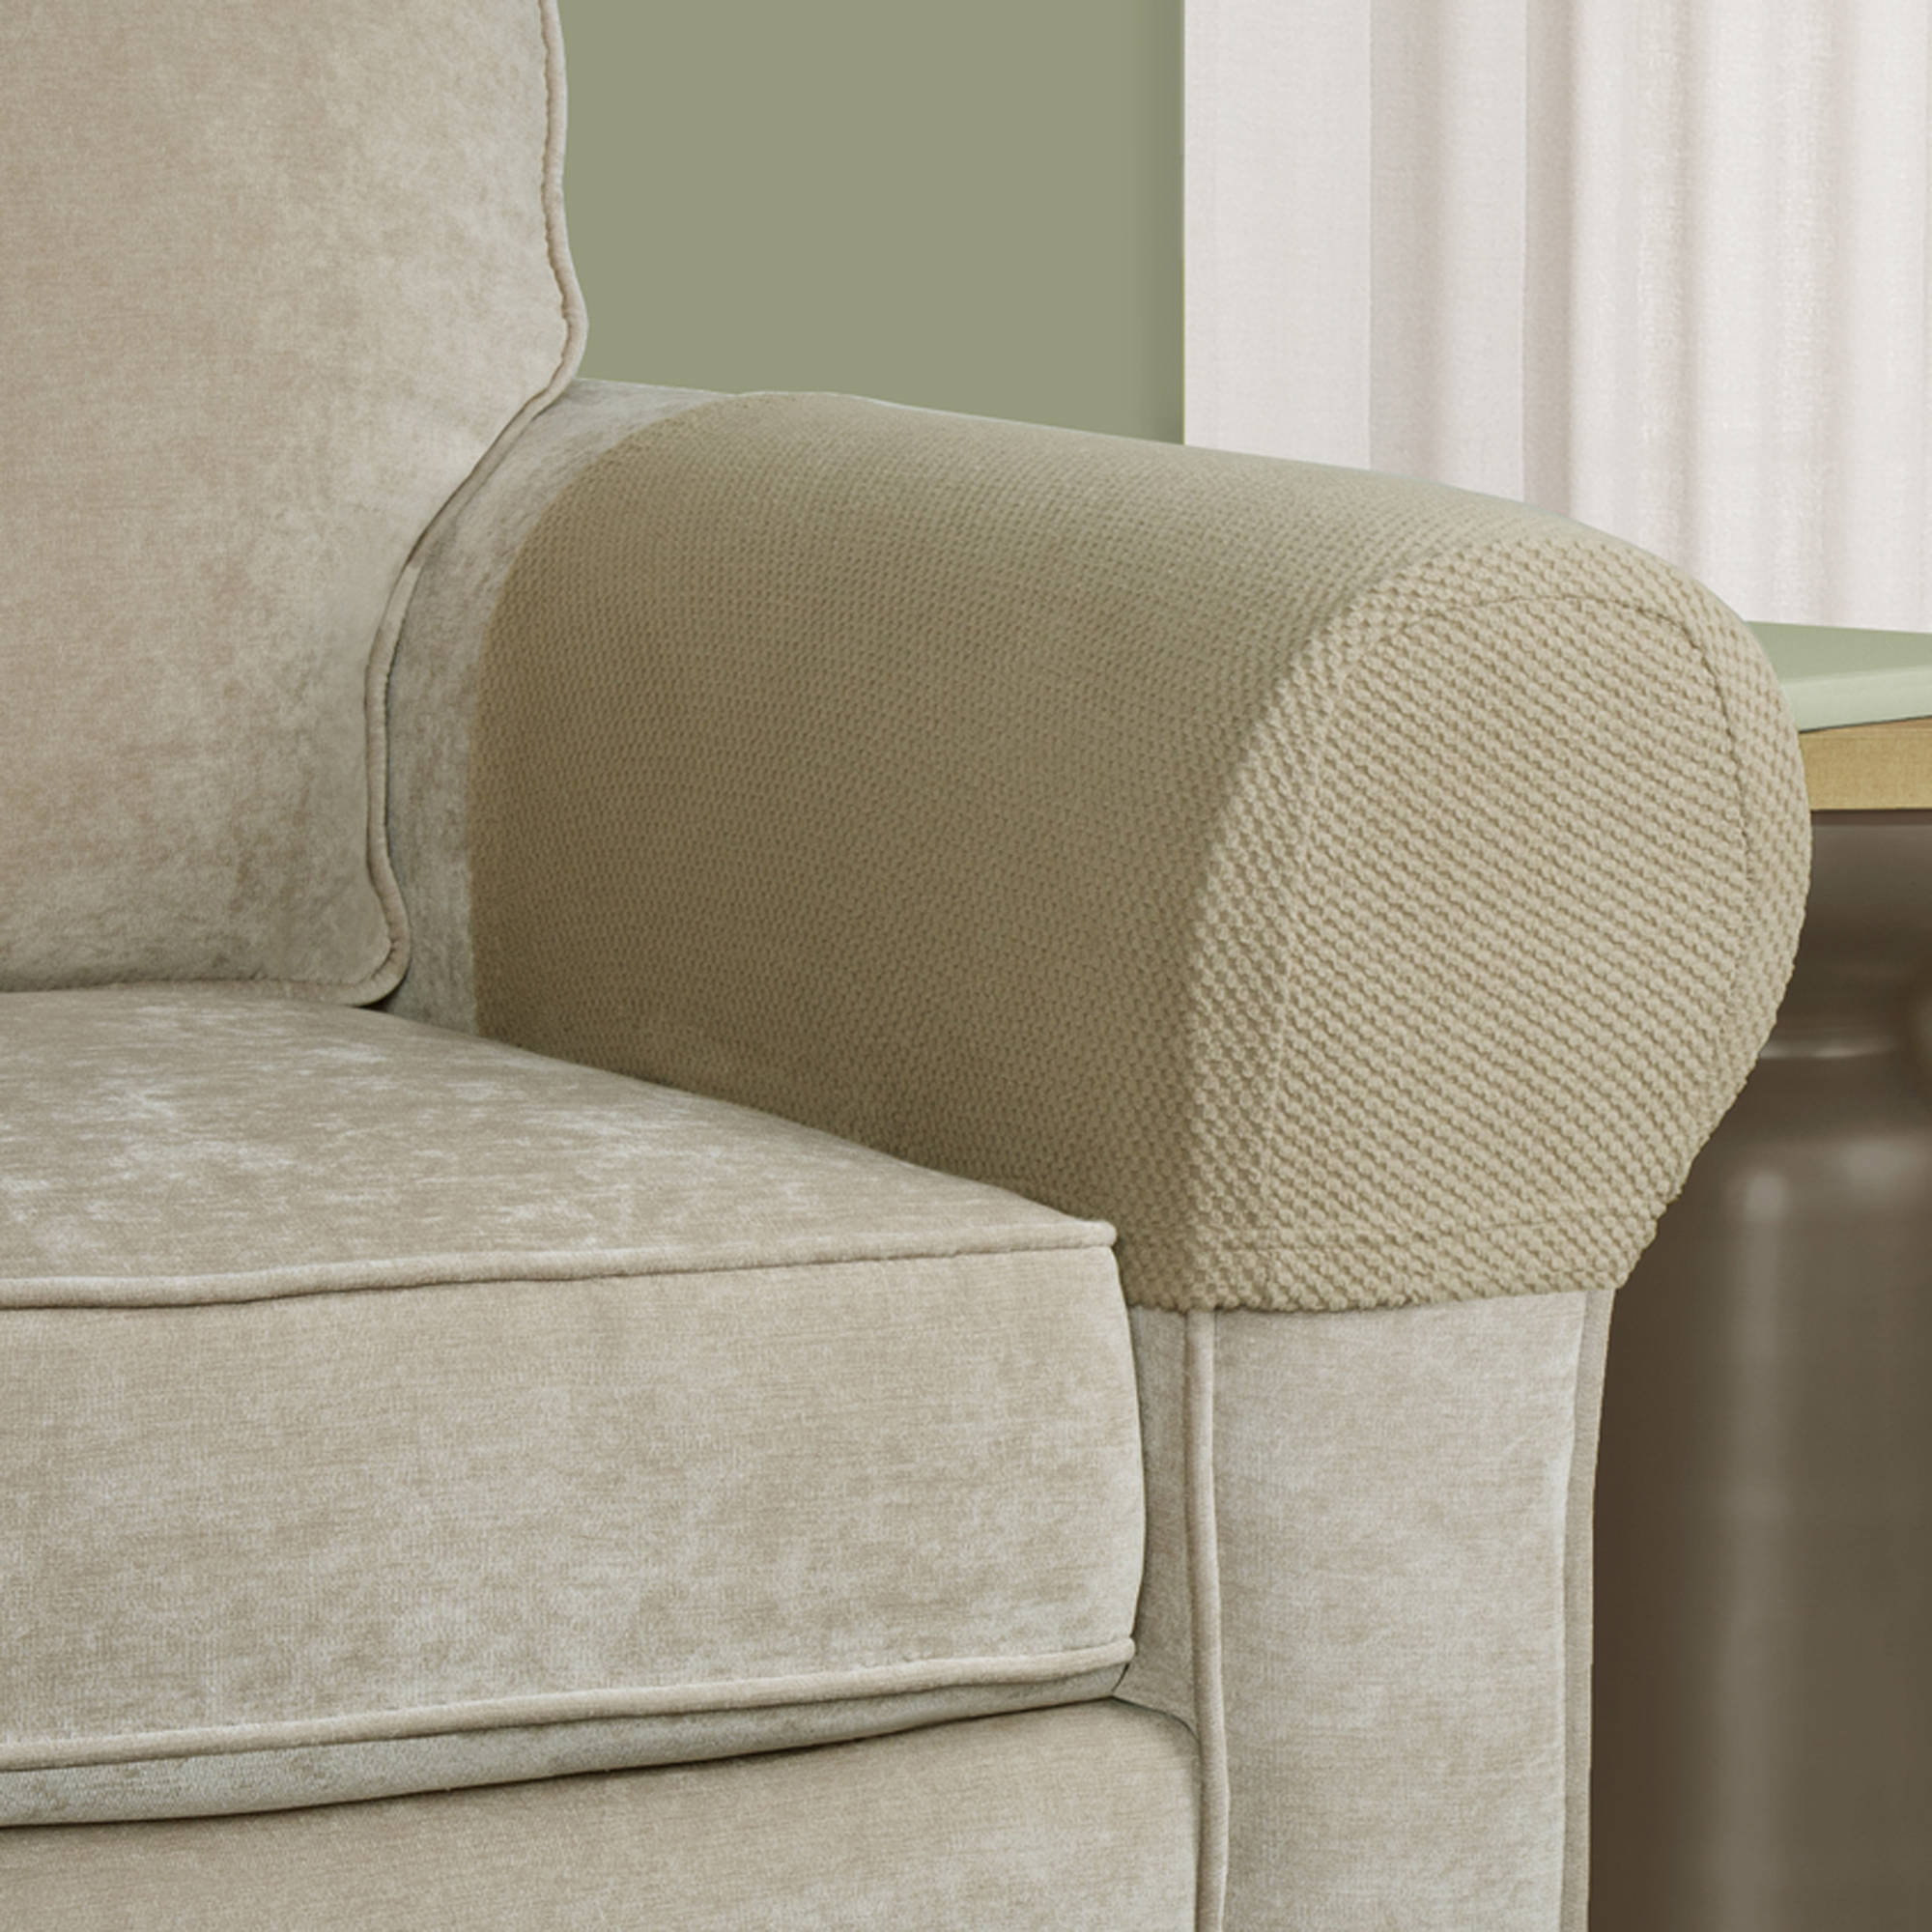 Newest Slipcovers For Chairs And Sofas With Regard To Furniture: Sofa Covers At Walmart For A Slightly Loose And Casual (Gallery 15 of 20)